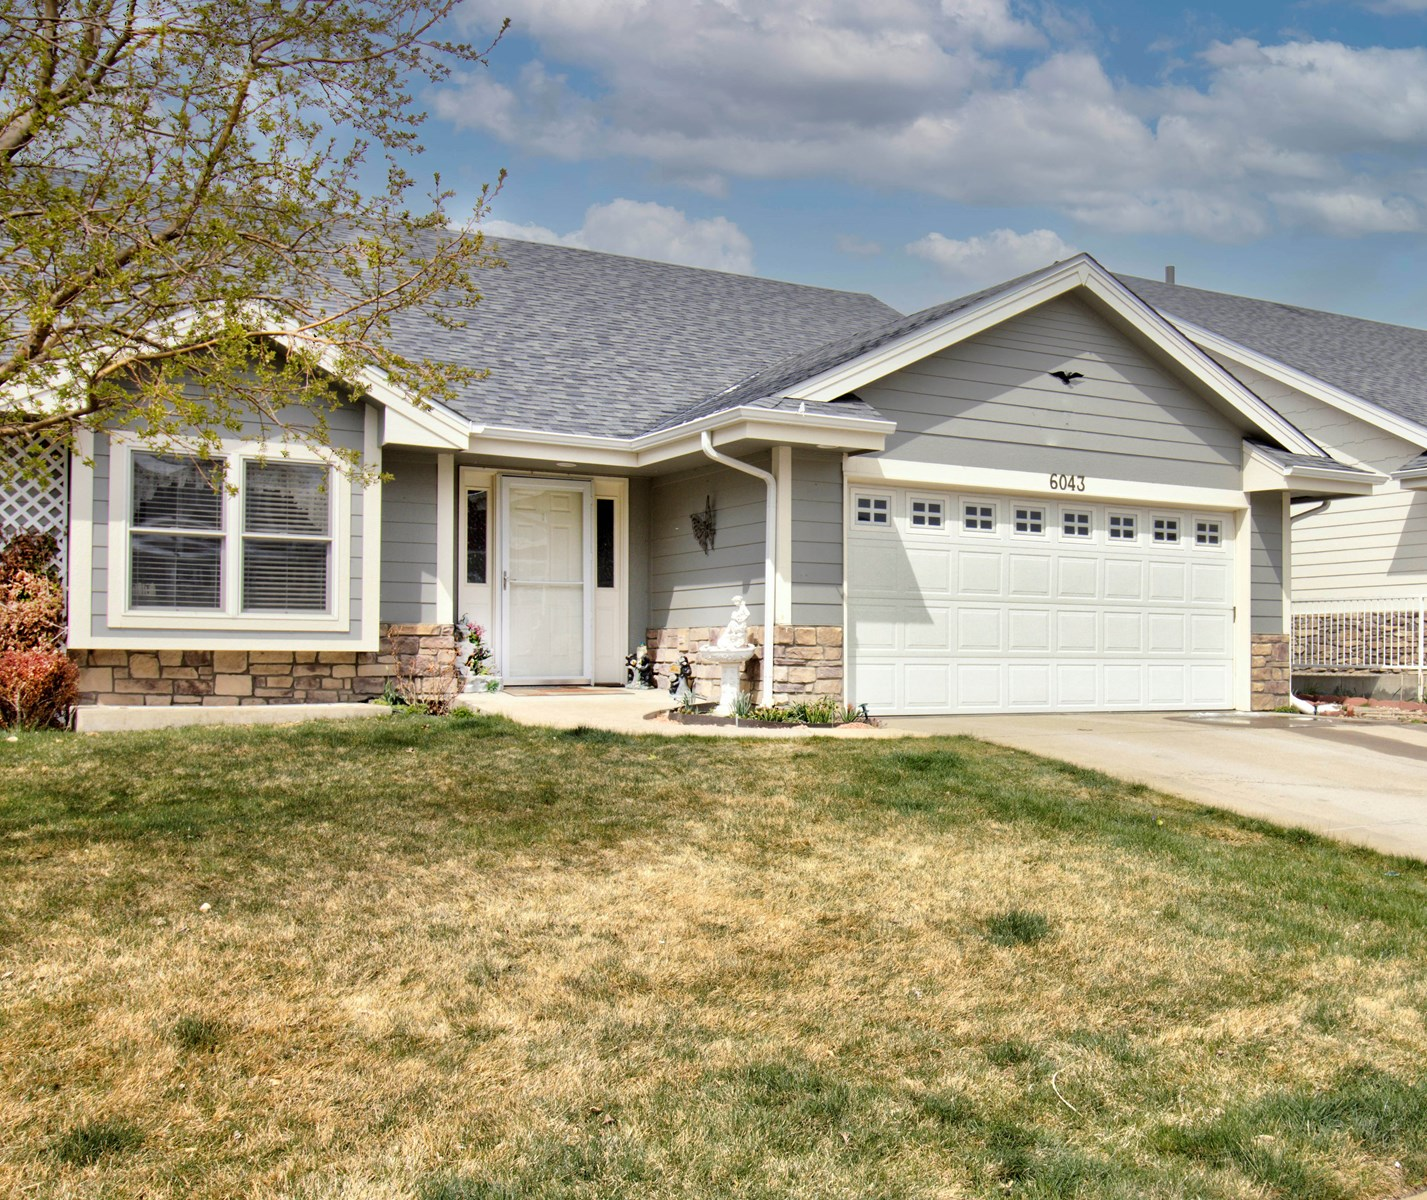 Homes For Sale Greeley Colorado Weld County Great Location!